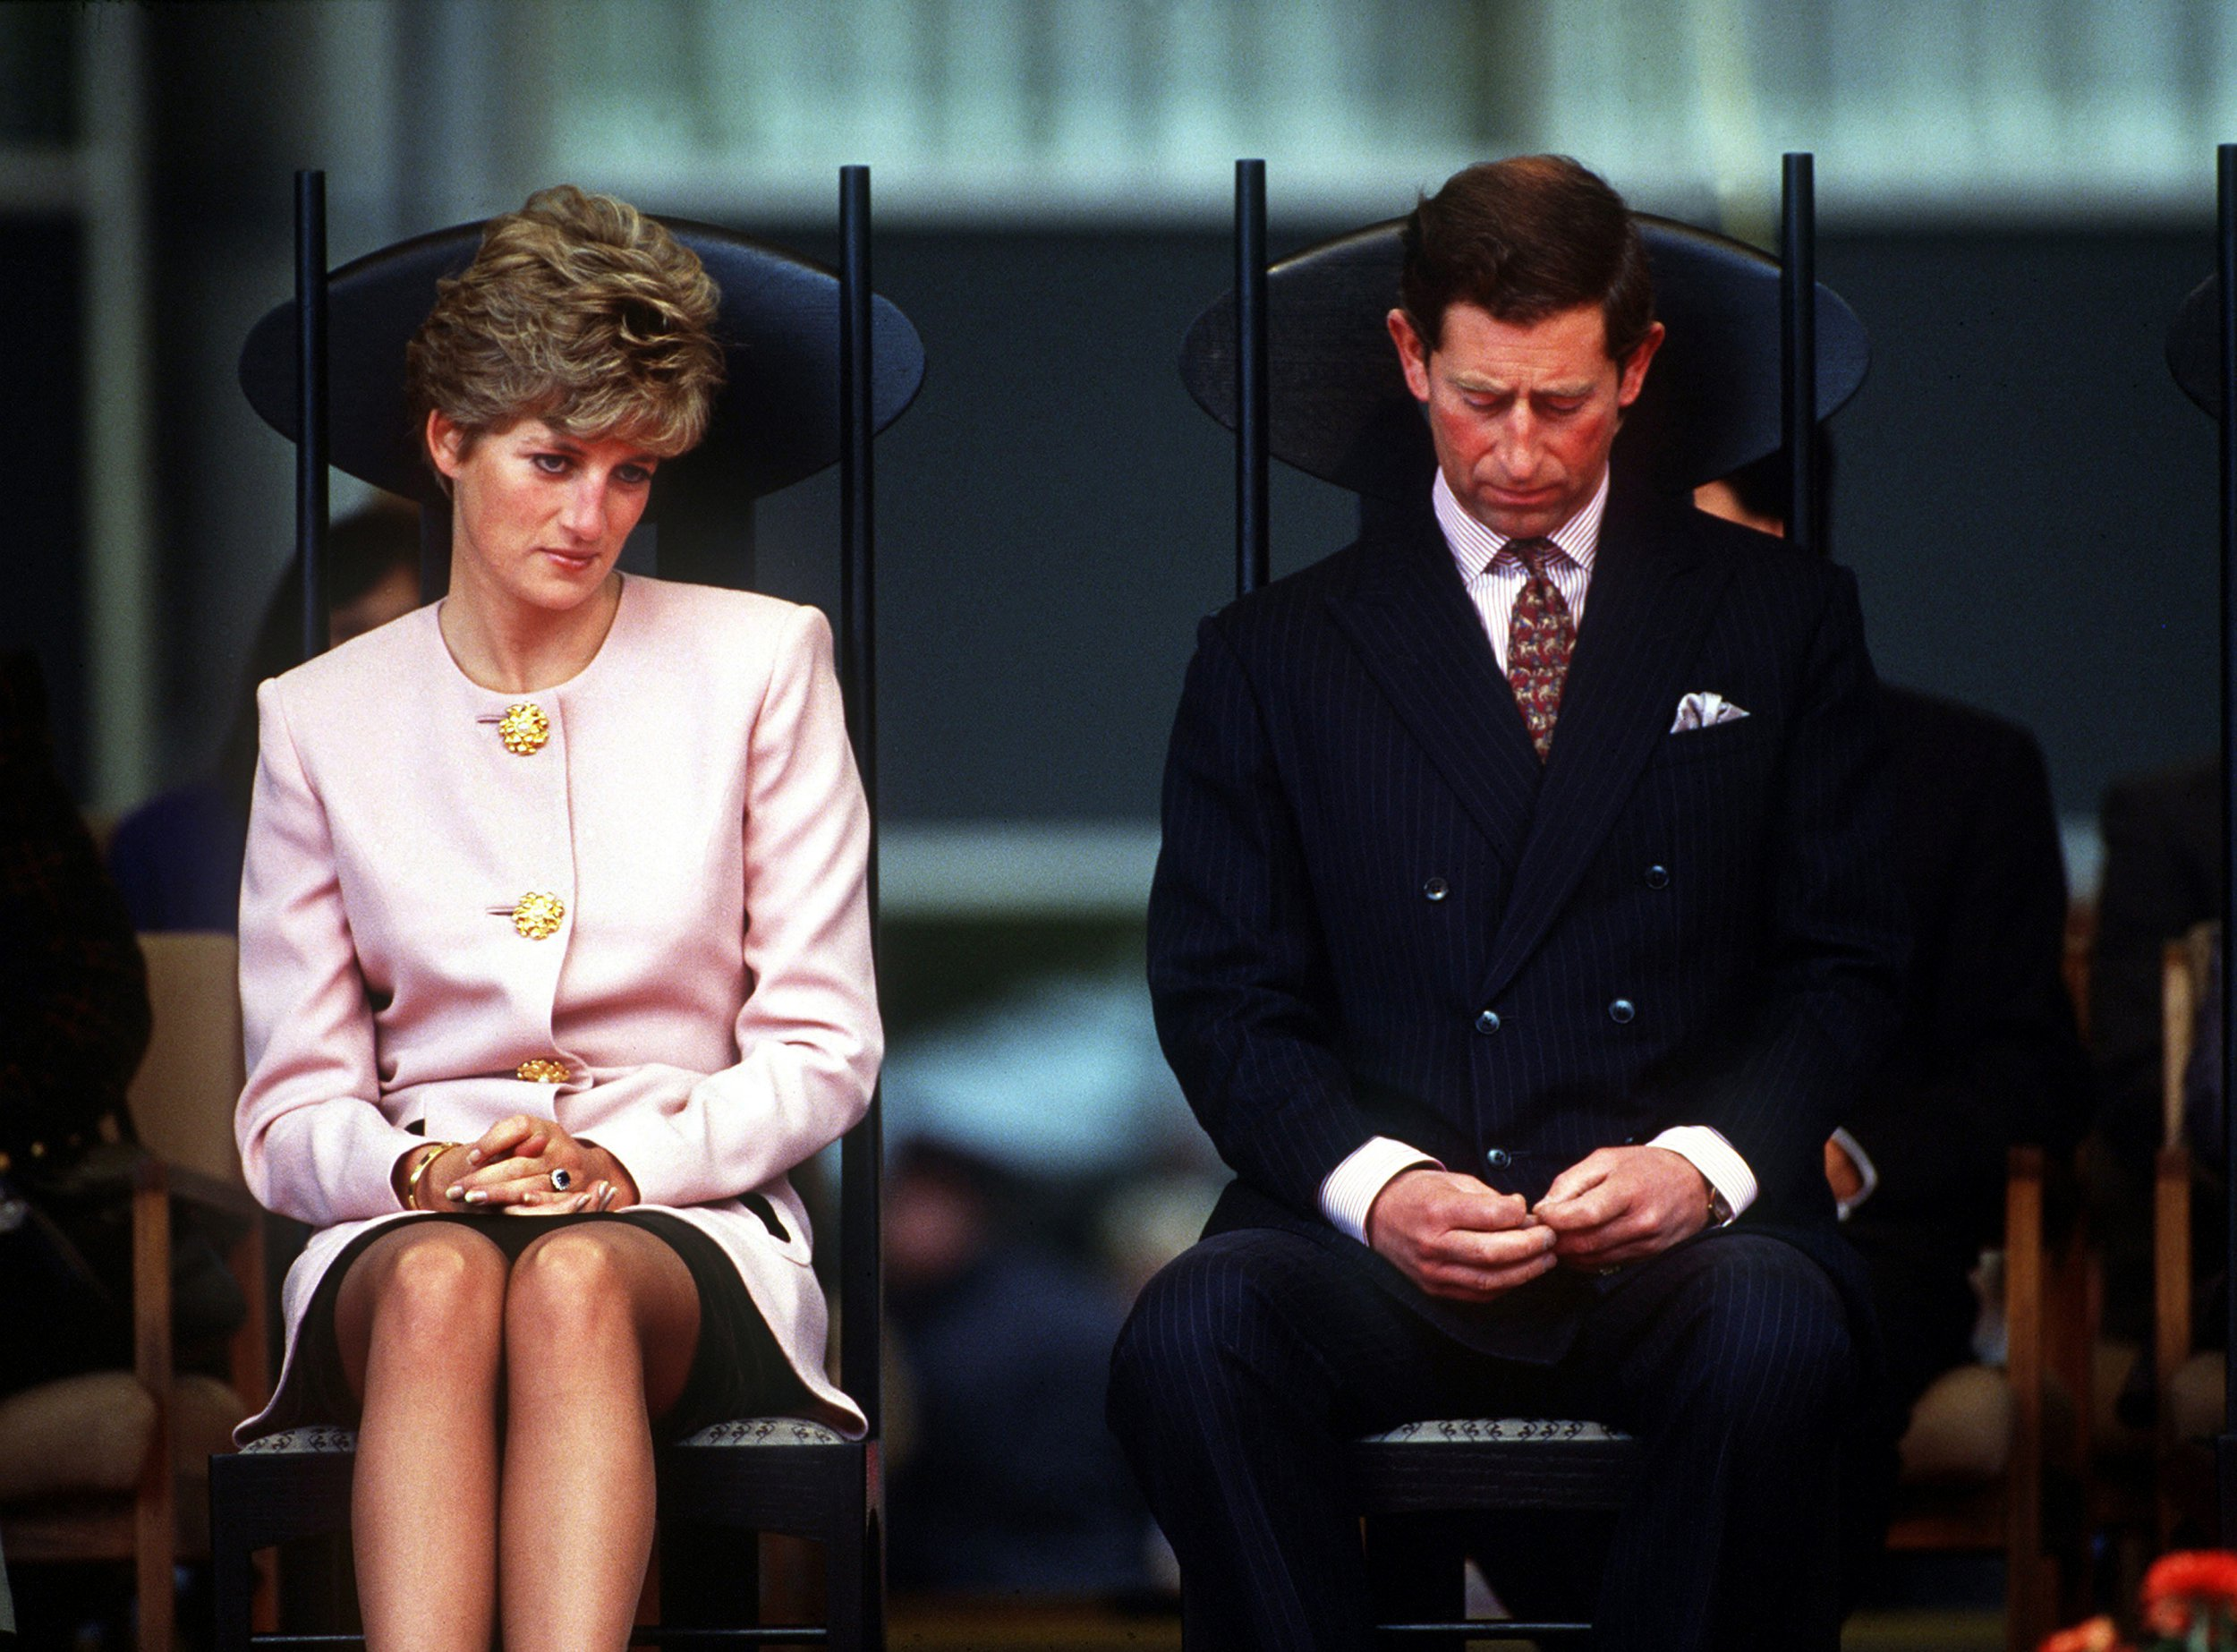 Princess Diana's bulimia began when Charles called her 'chubby', tapes reveal